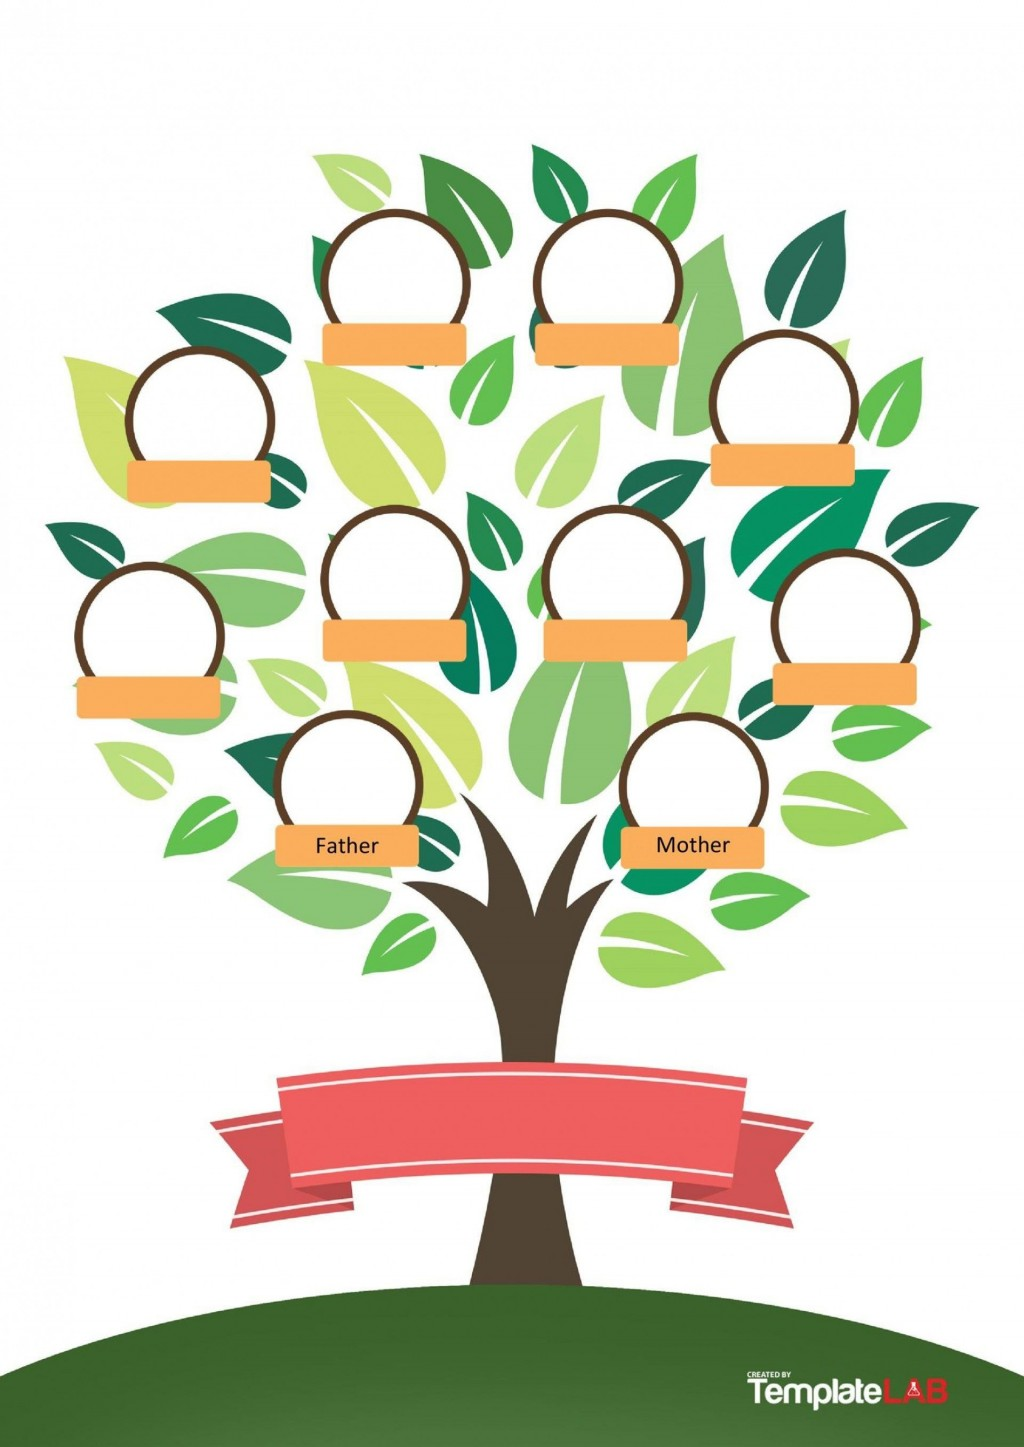 003 Unforgettable Free Editable Family Tree Template For Mac Picture Large